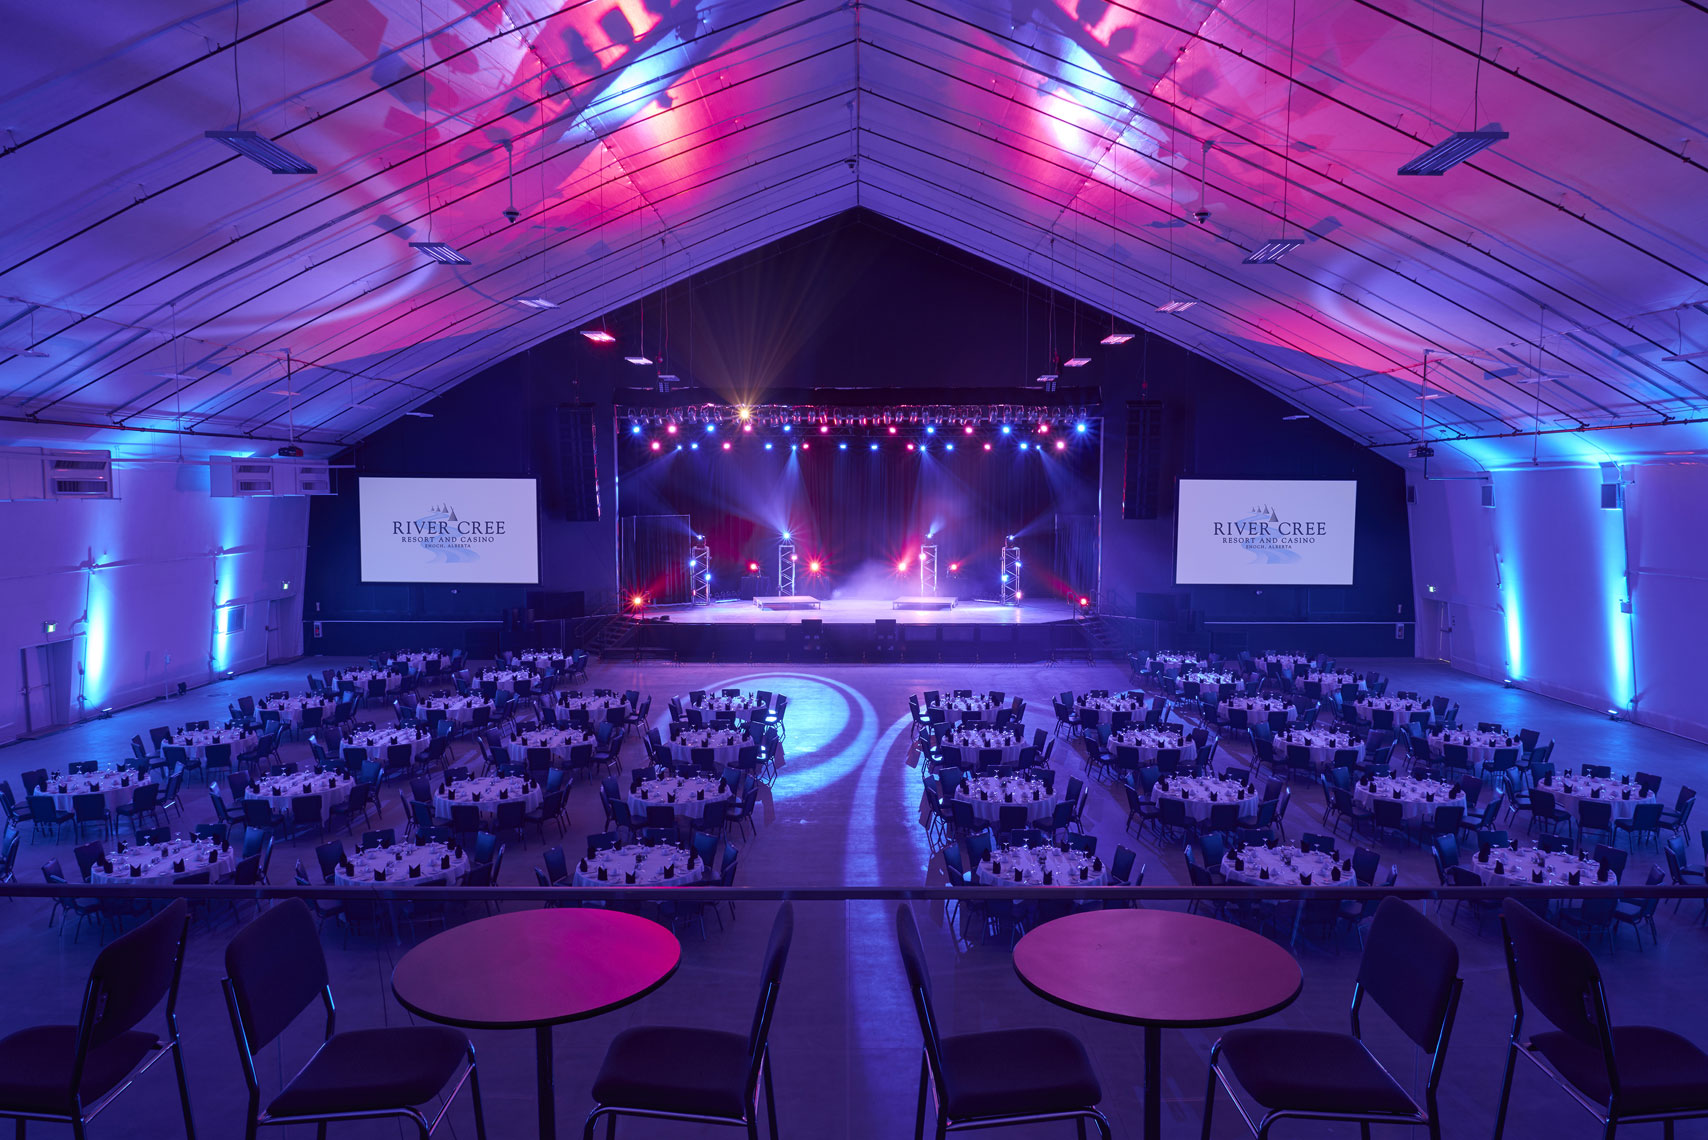 The-Venue-Edmonton Marriott at River-Cree Resort-w